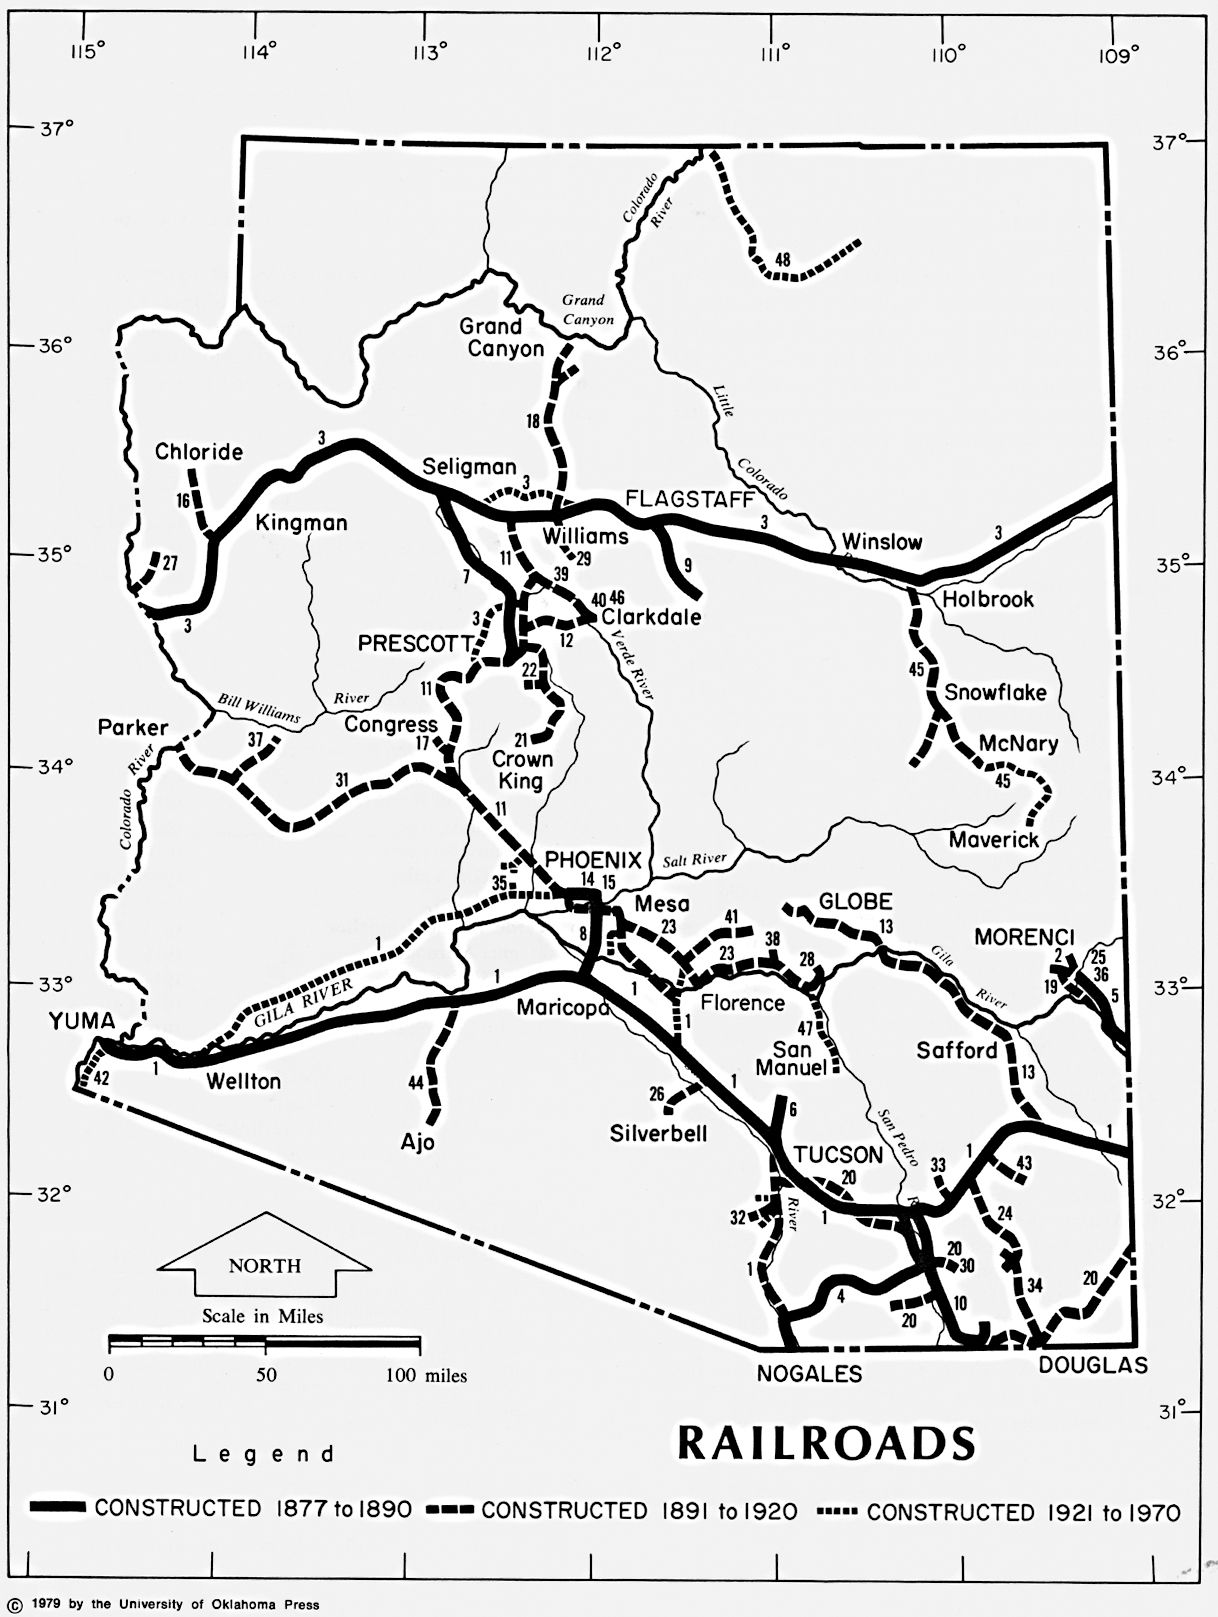 Map Of Arizona Railroads.Arizona Railroads 1877 1970 Ad Ancient Maps In The State Library